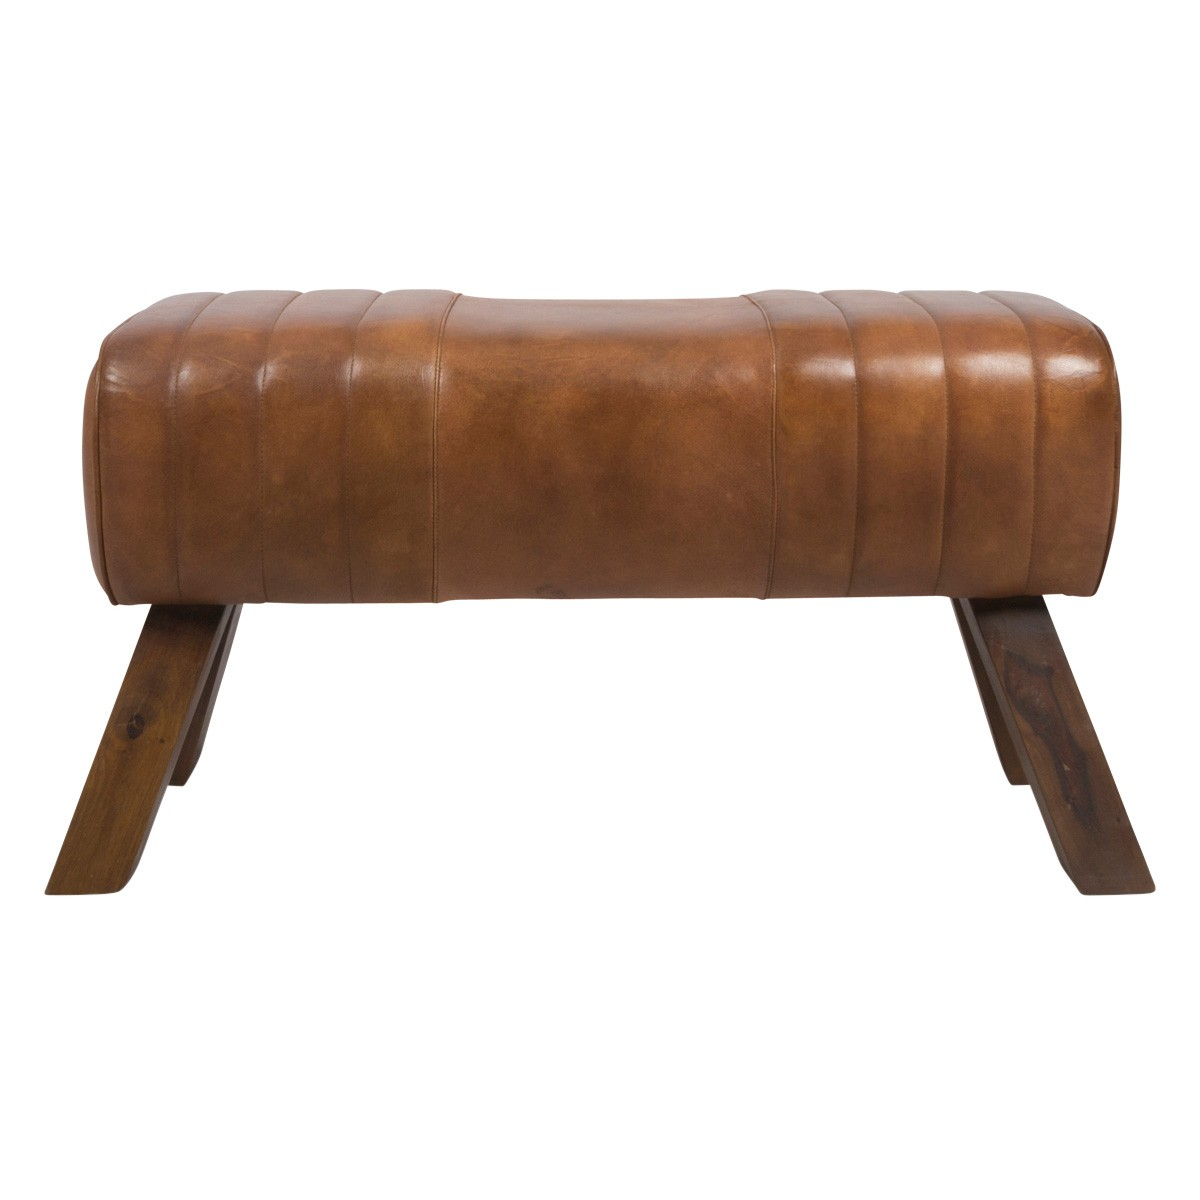 Chelsea Leather Ottoman Bench, 87cm